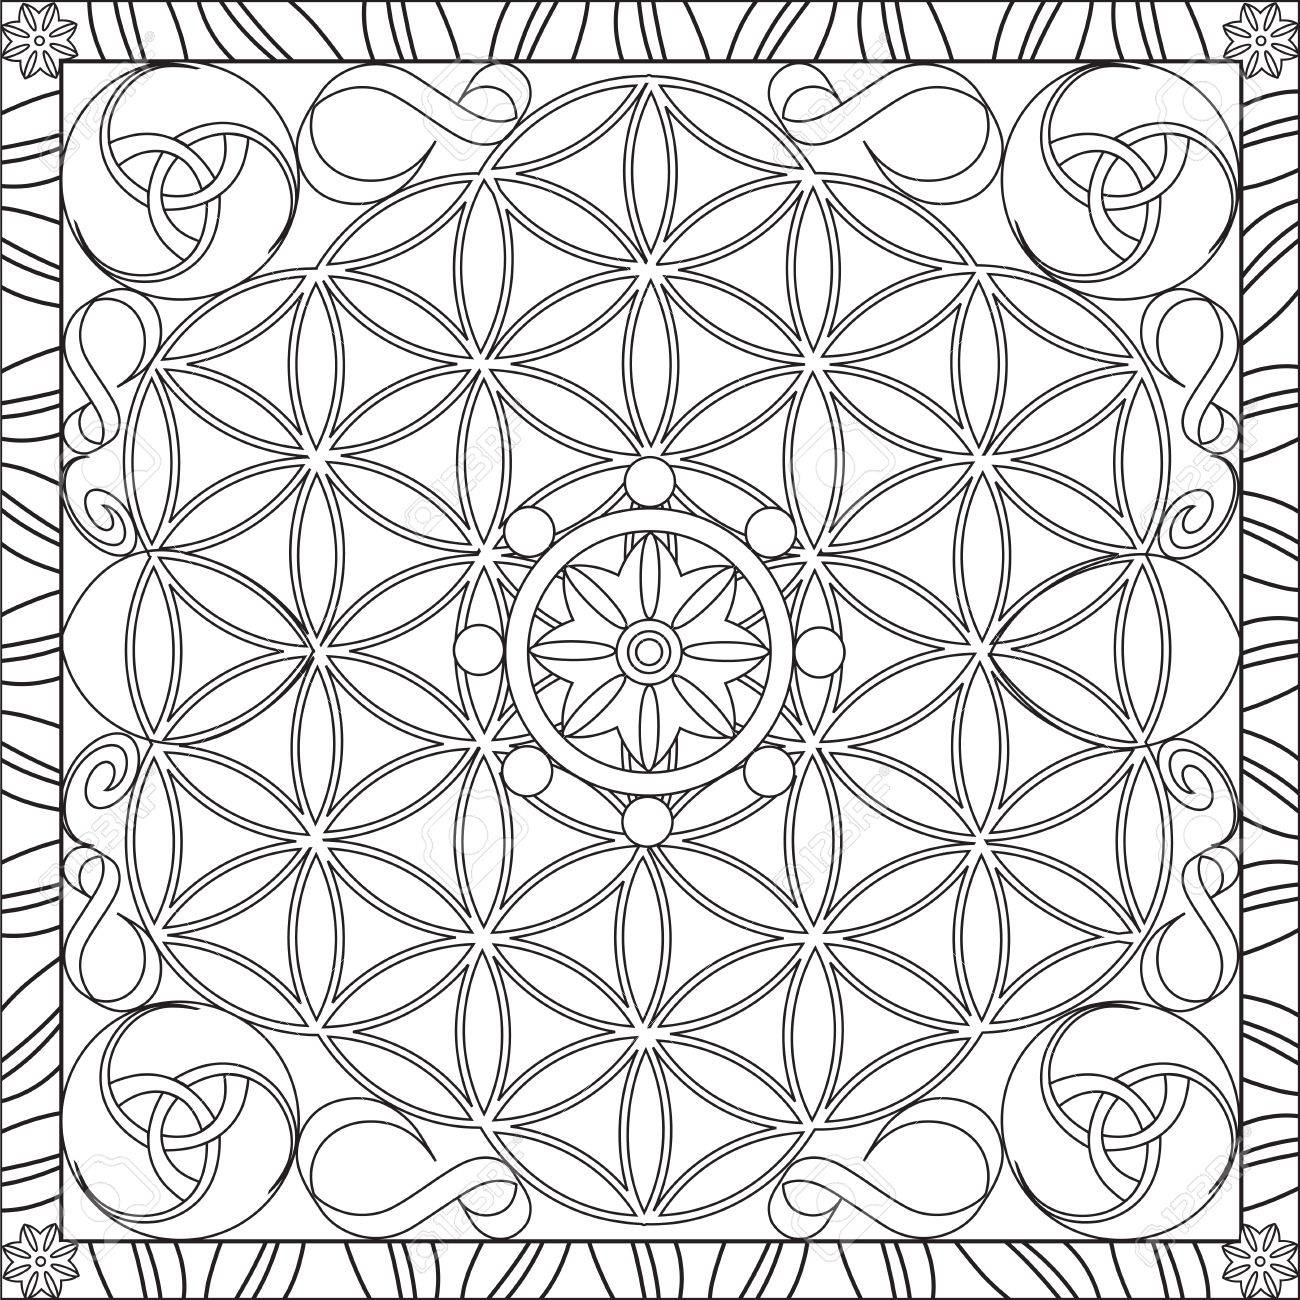 Page Coloring Book For Adults Square Format Flower Of Life Mandala Design Vector Illustration Stock